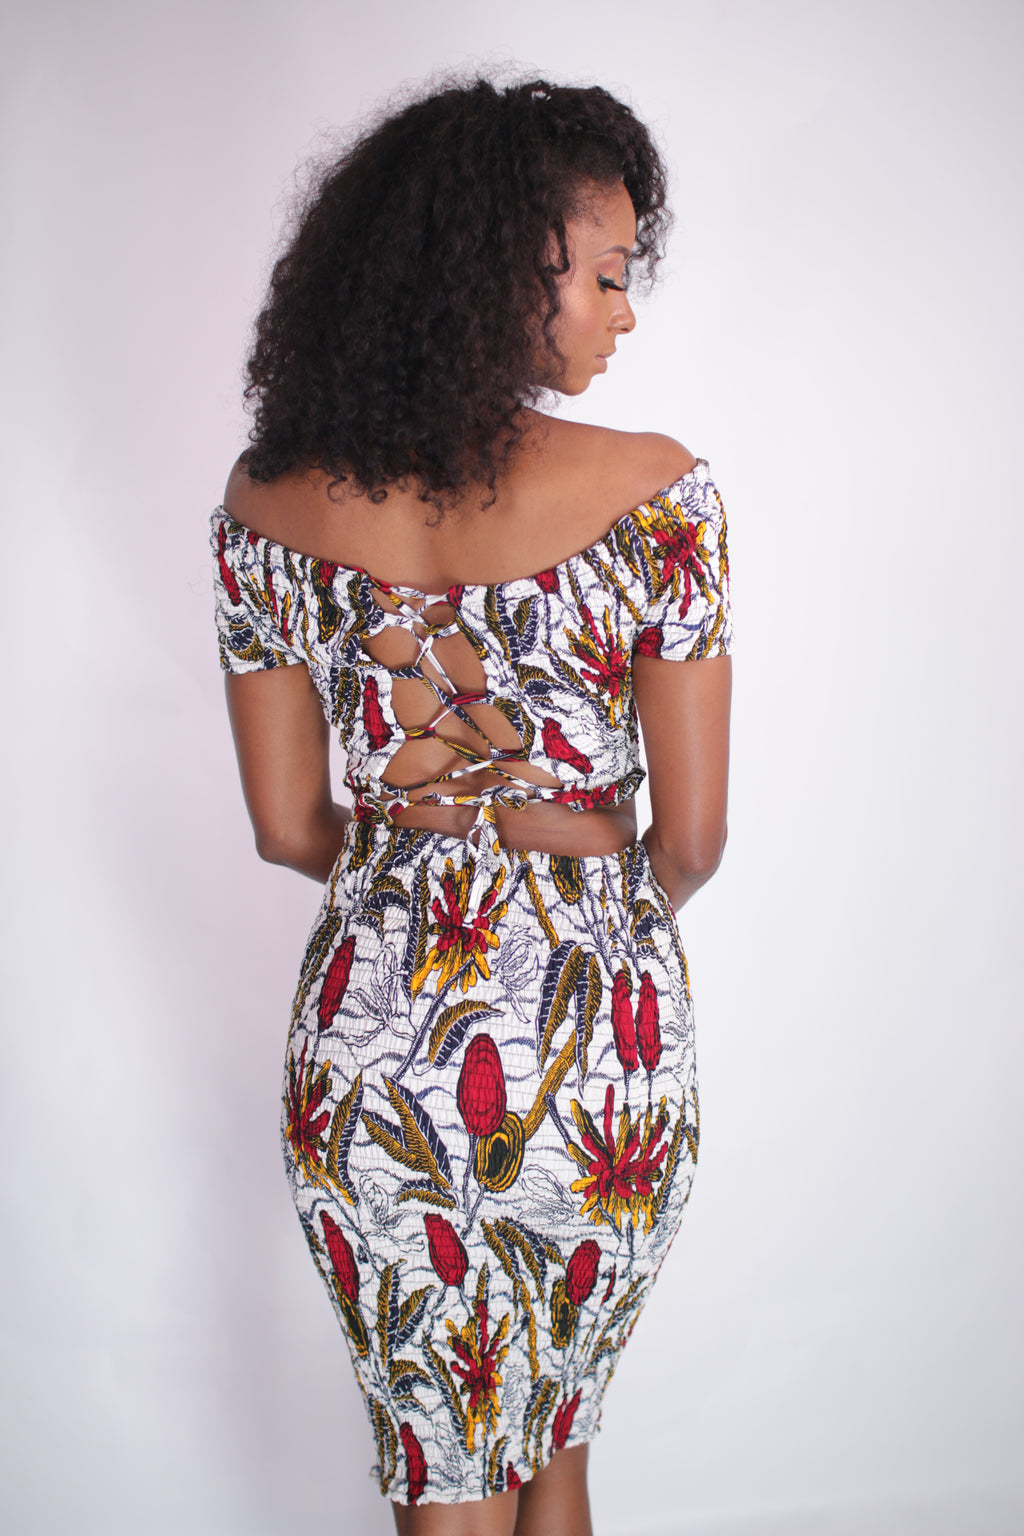 African Crop Top GIFTY Corset Top